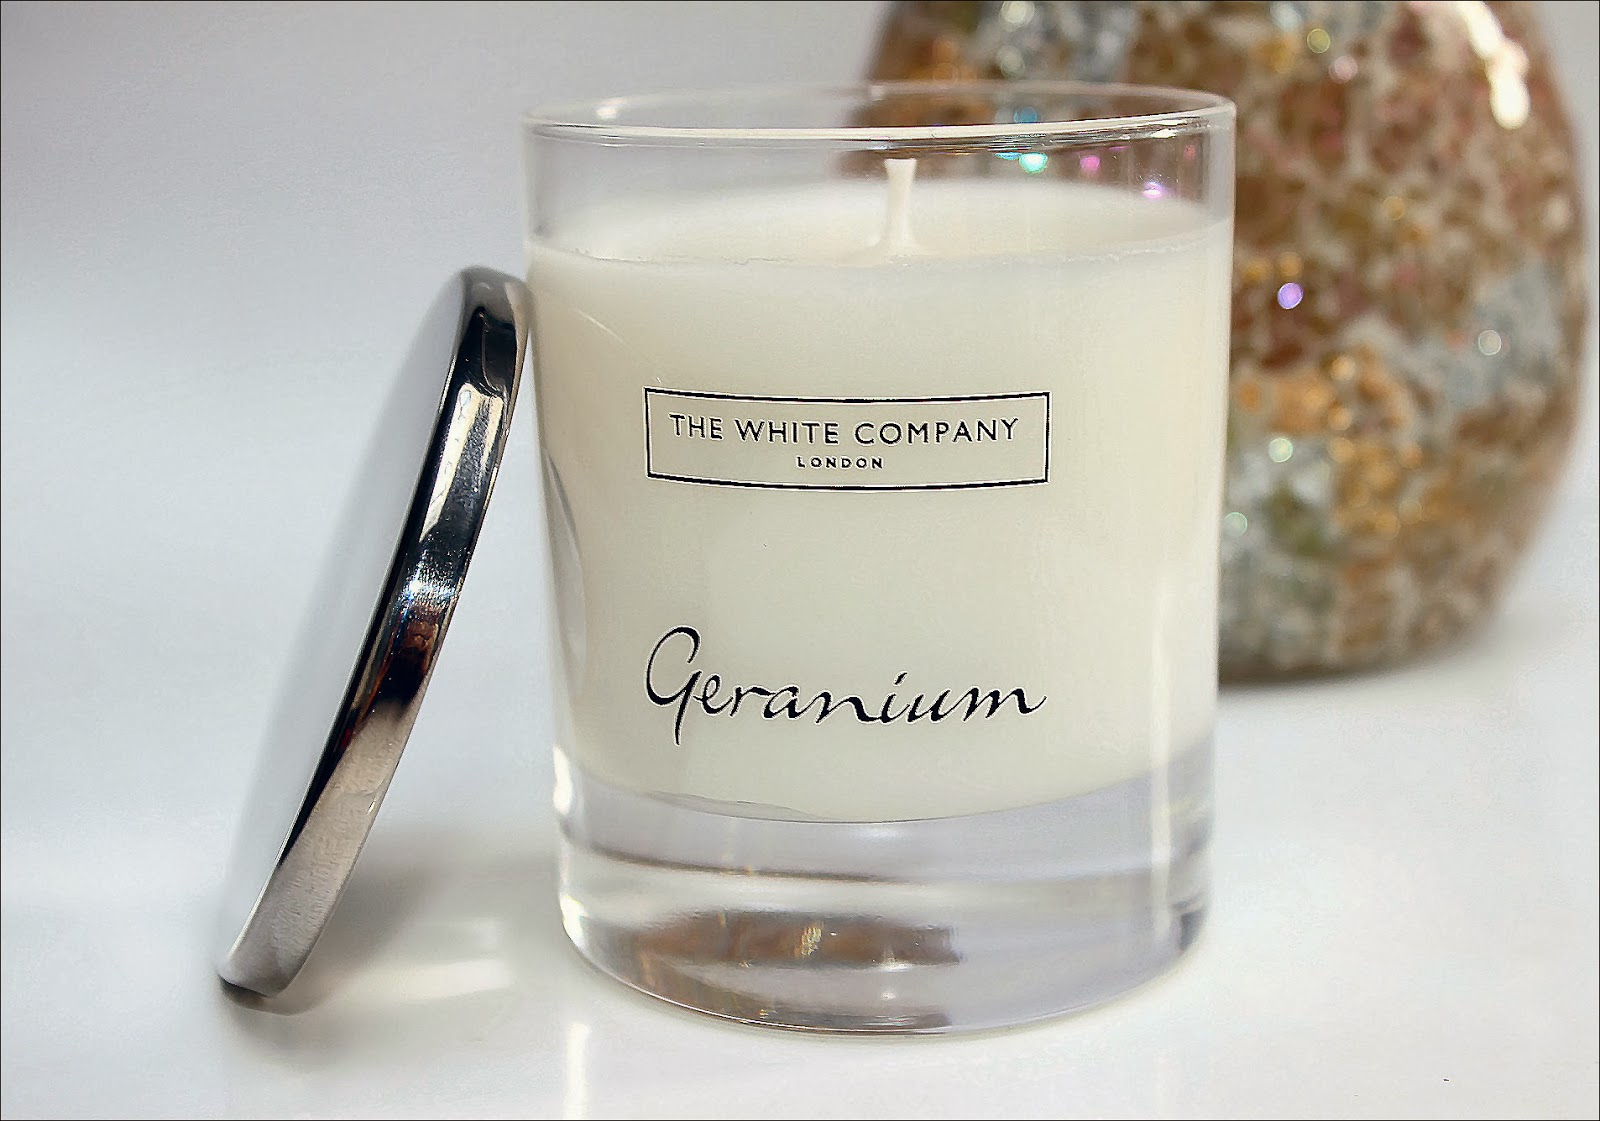 The White Company Geranium Candle